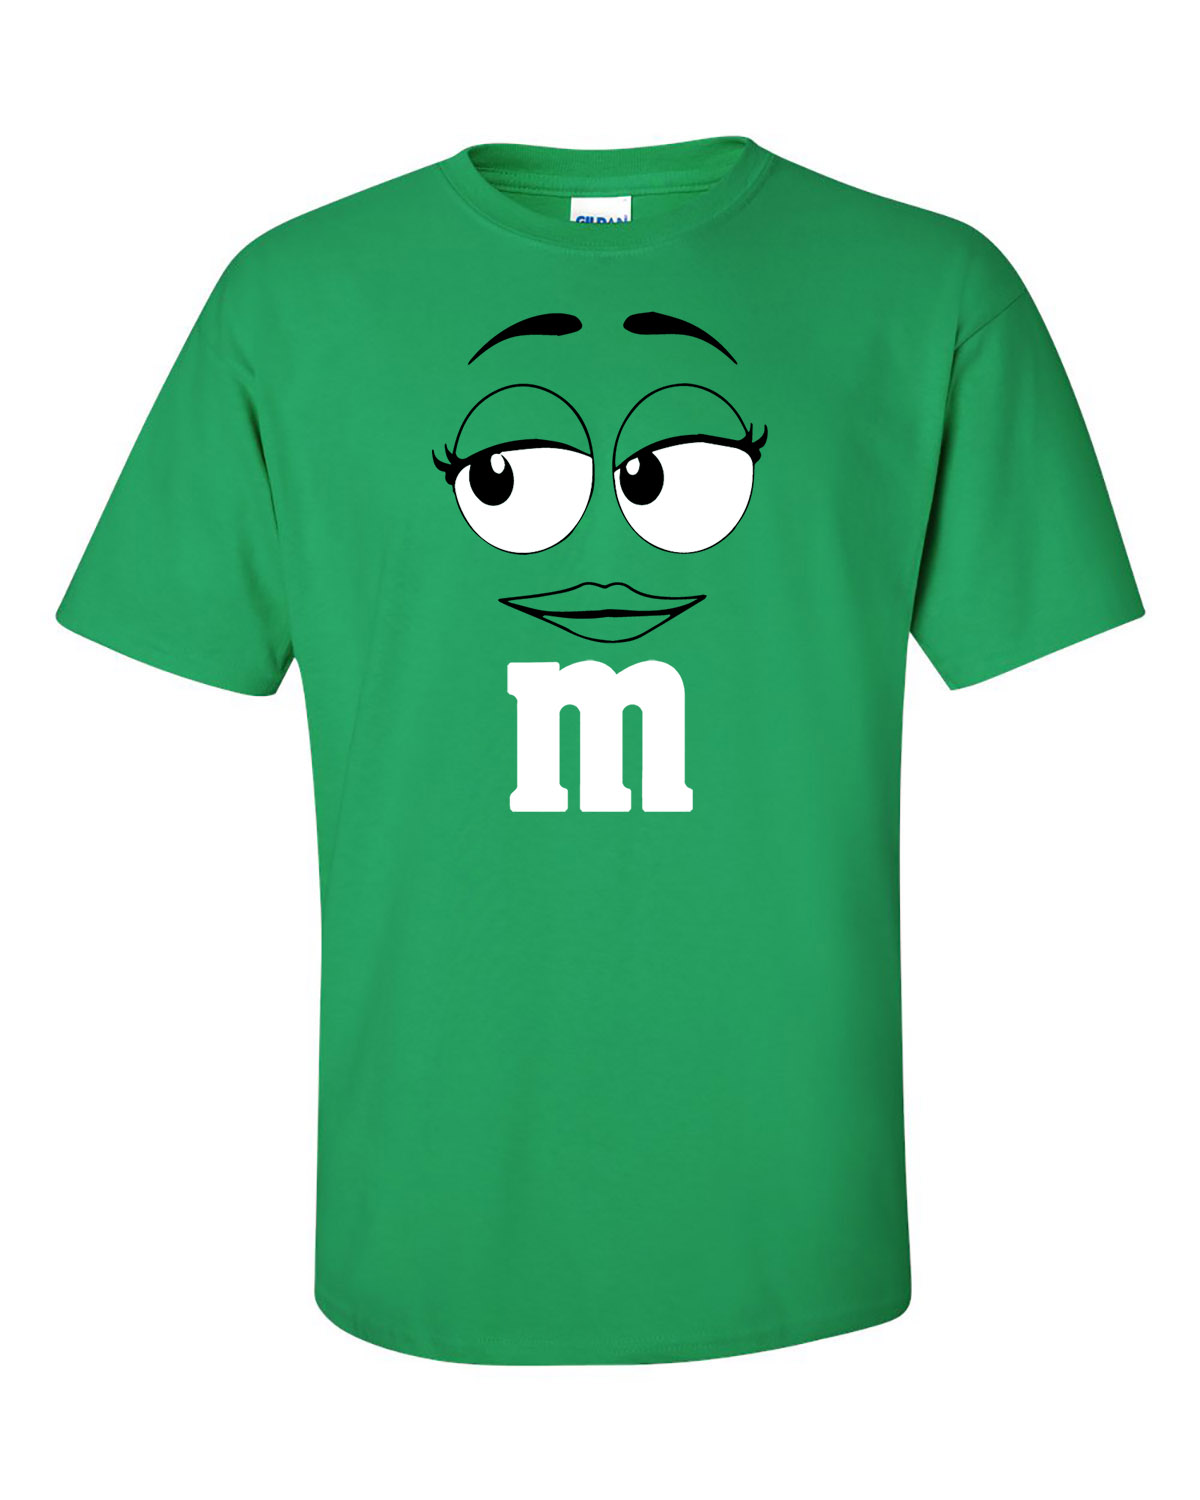 M & M Shirt Family Halloween Costume Shirts  (Sold Separately)